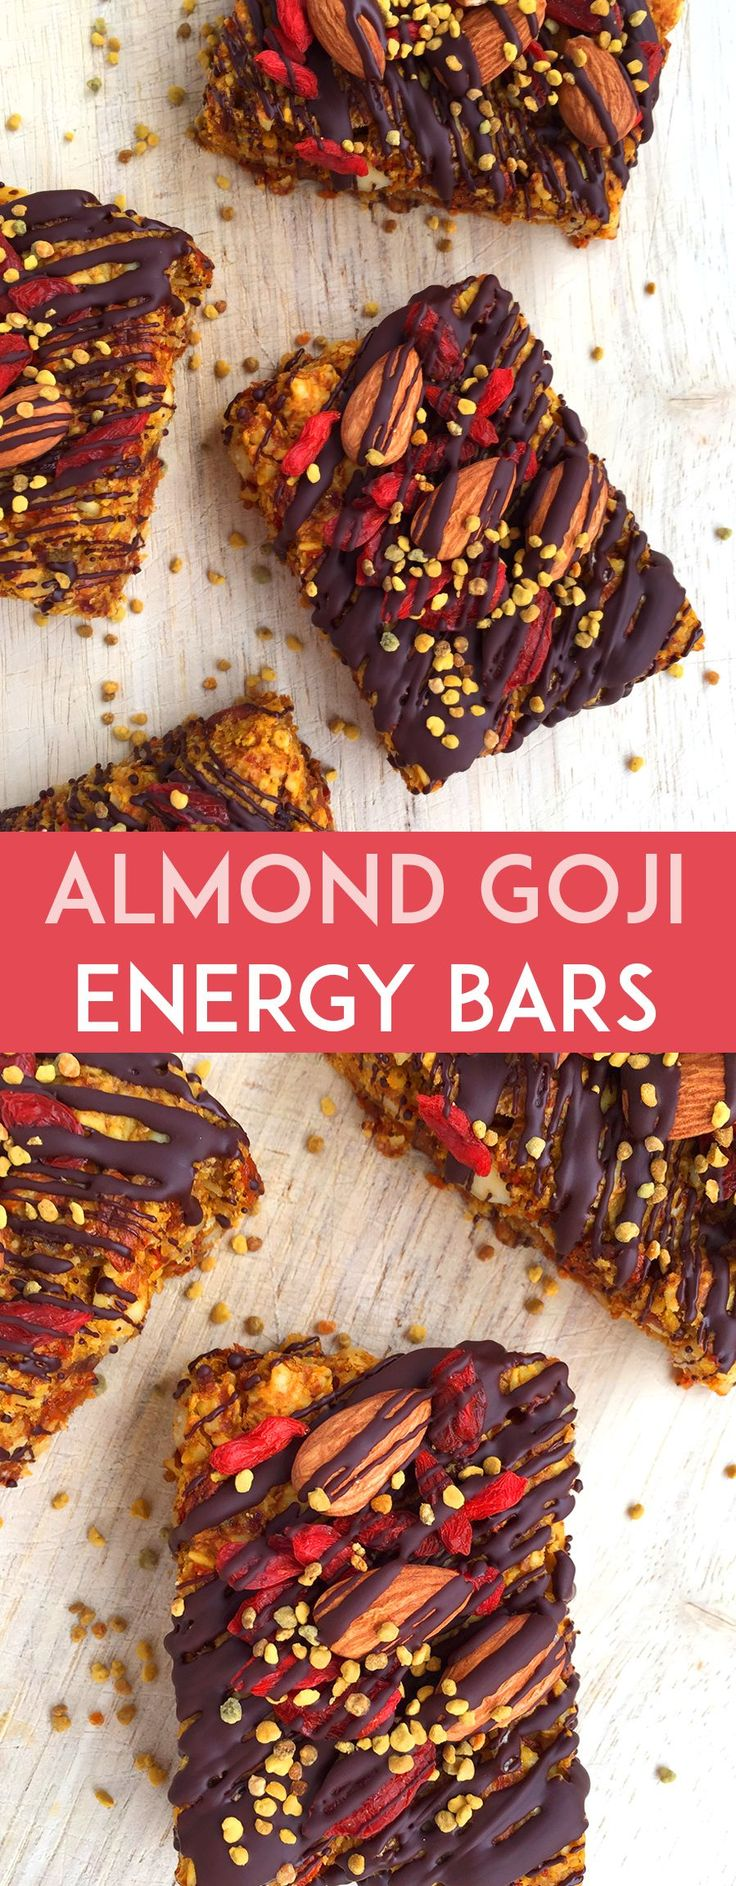 These grain-free Almond Goji Energy Bars are made of just nuts, fruit, coconut, eggs and love! (Drizzle with unsweetened chocolate if desired) | GrokGrub.com #grainfree #healthy #superfood